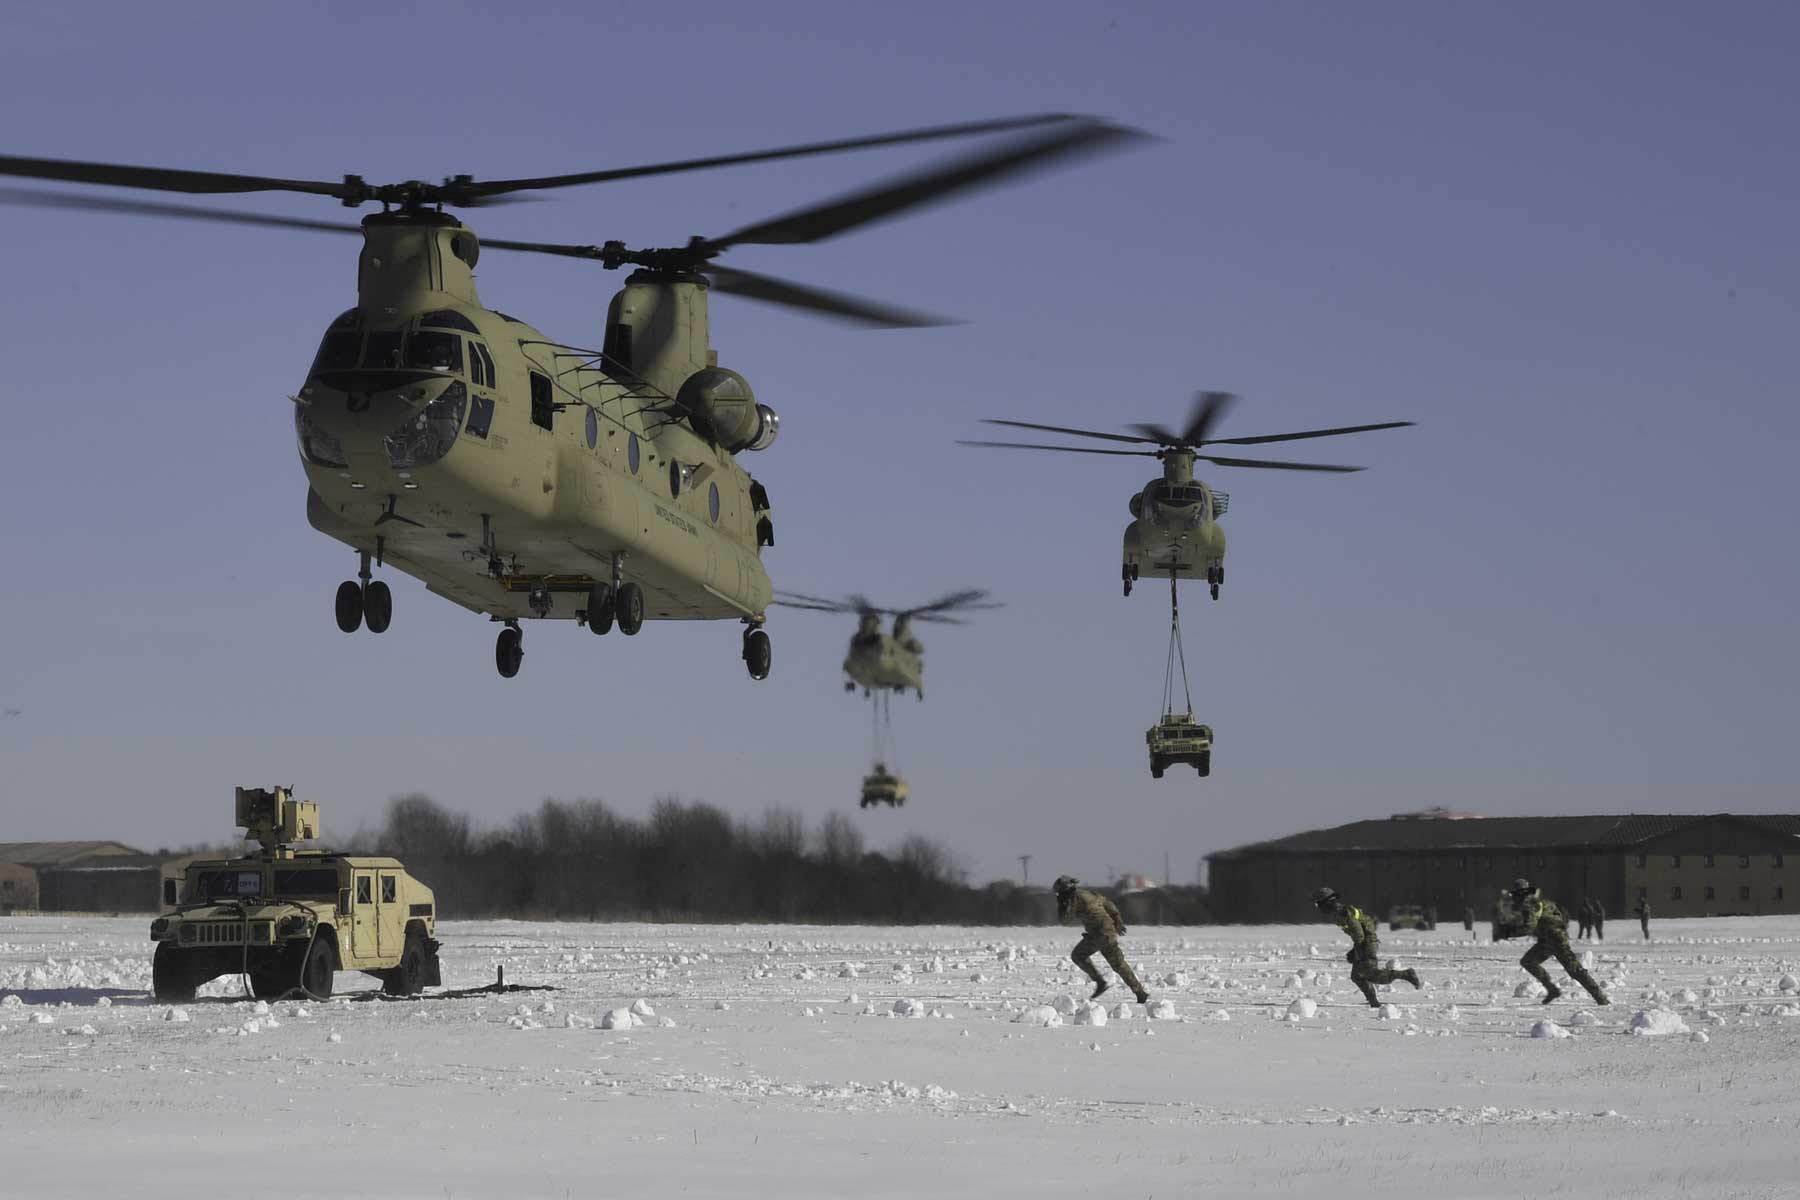 After Almost 5 Years, Army's 101st Airborne Will Return to Full Air Assault Power